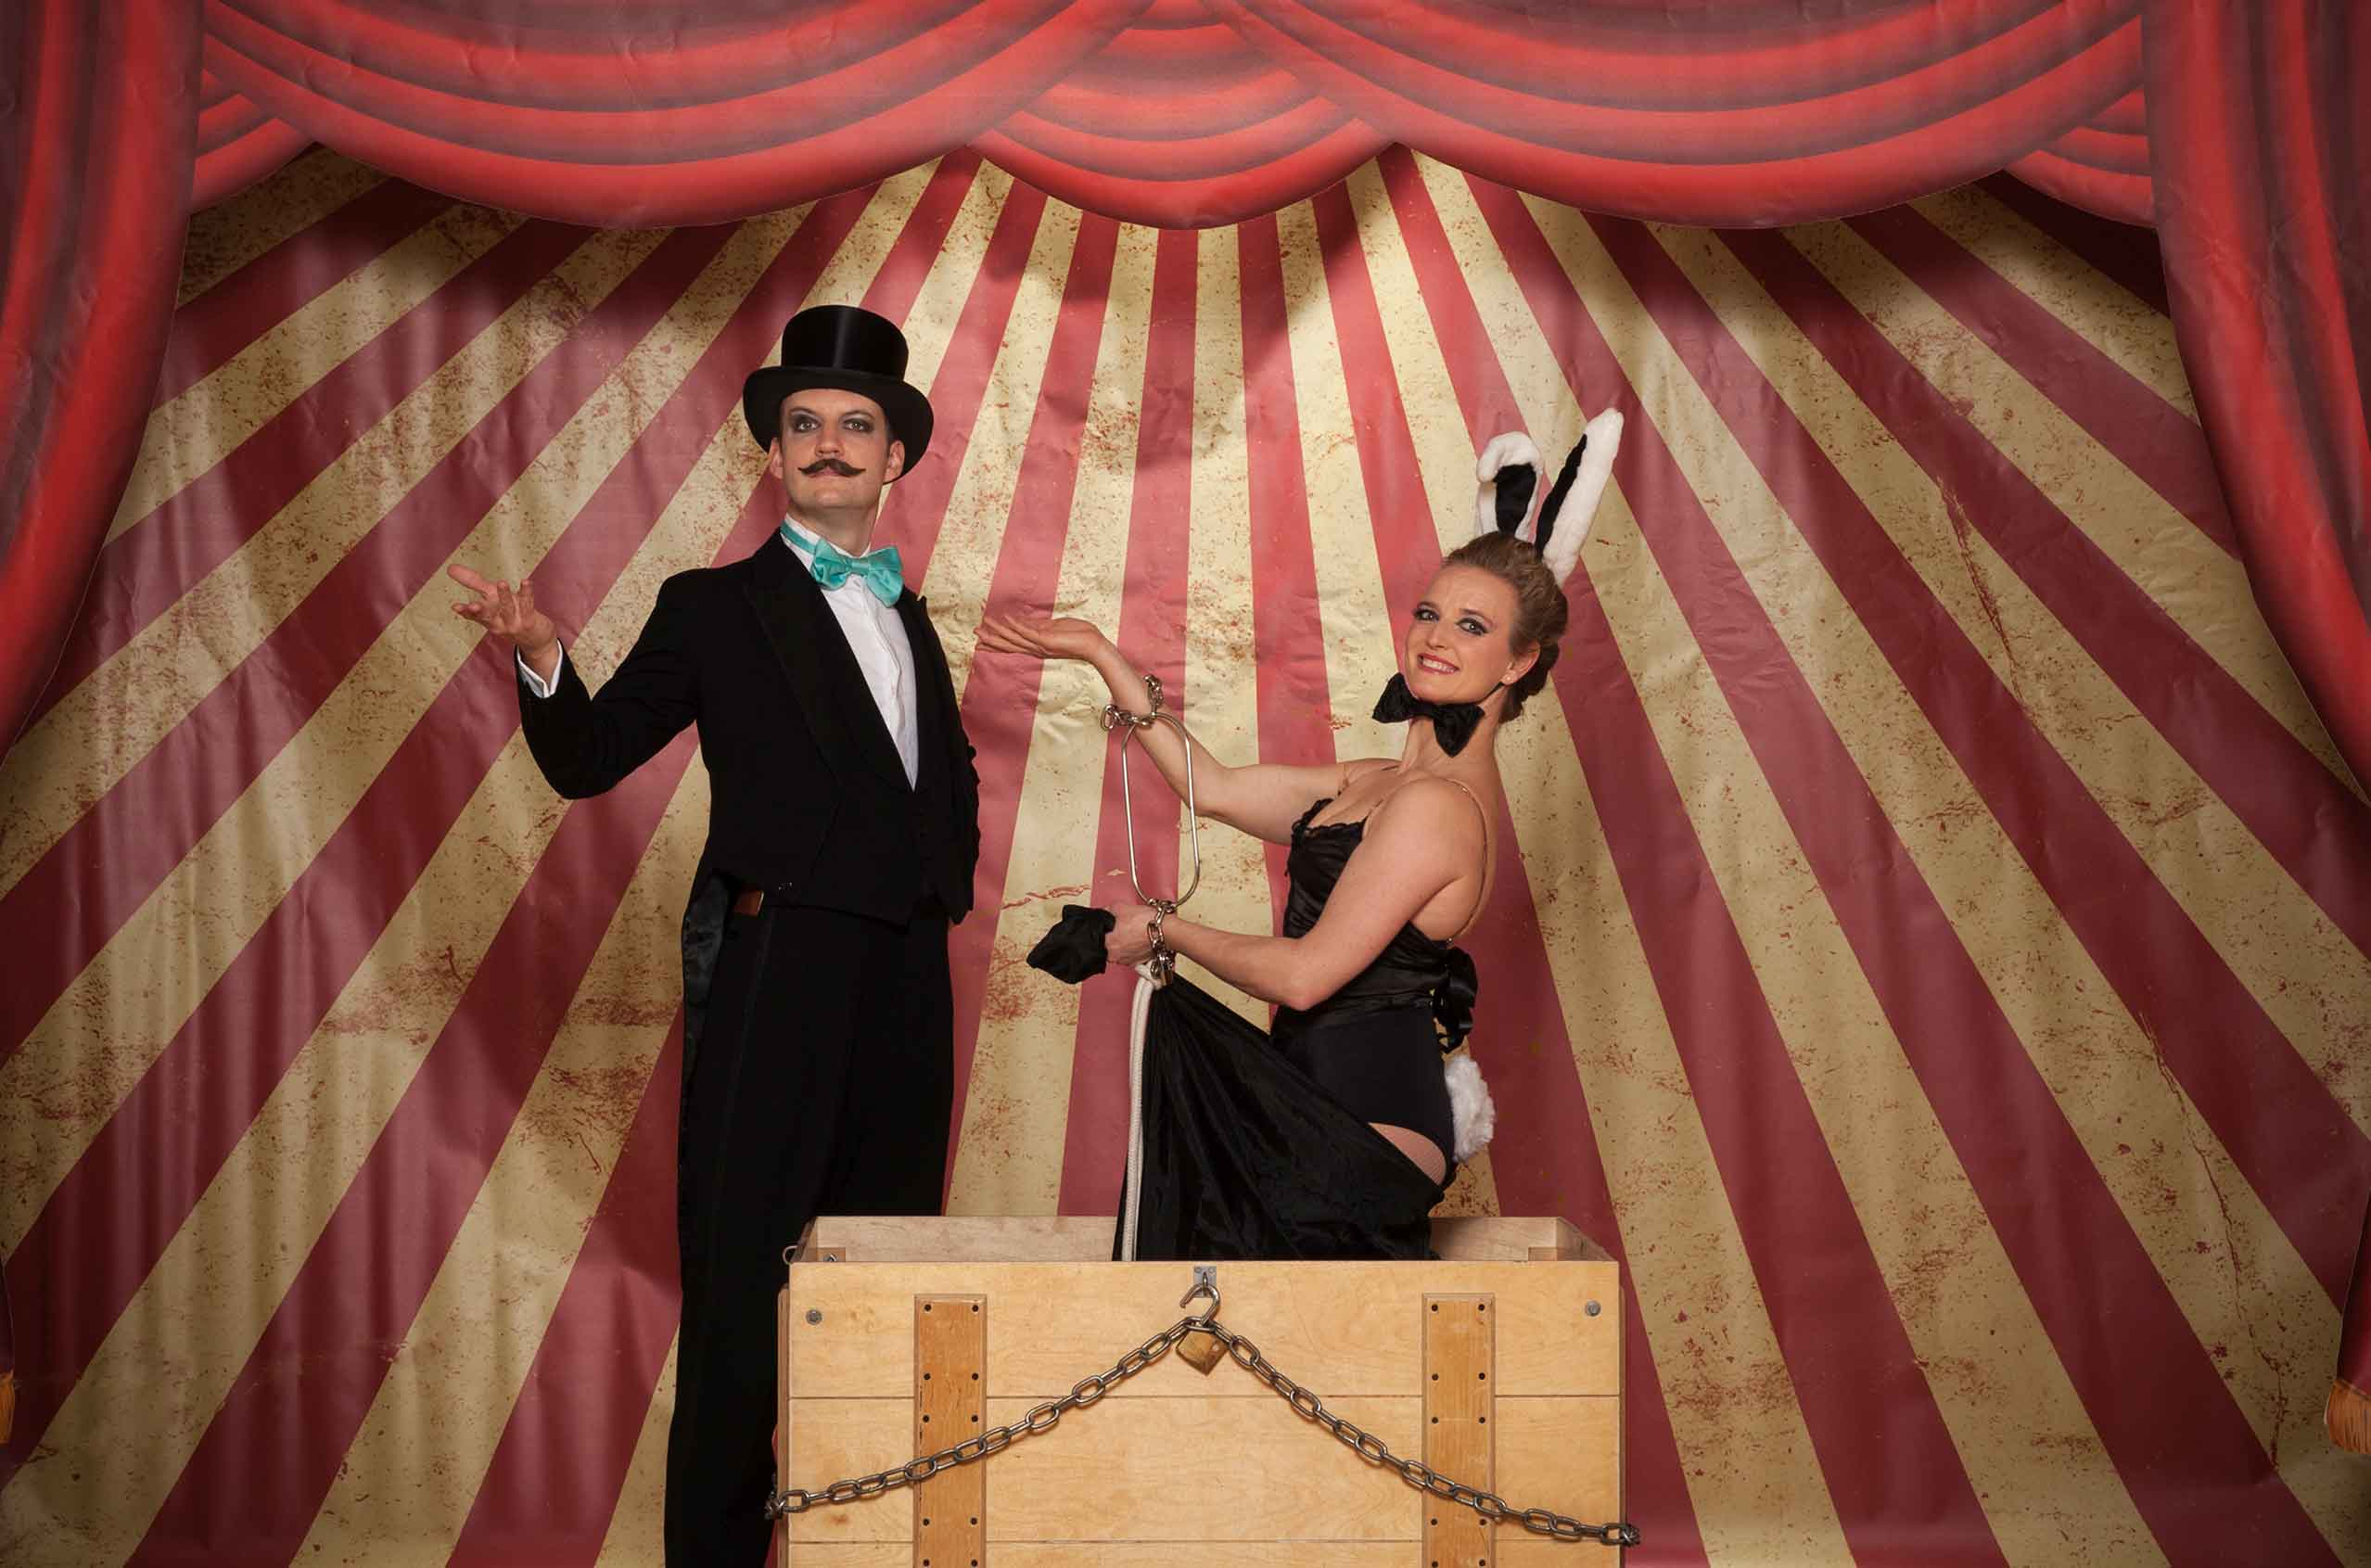 Vaudeville Magic Show with Norvil and Josephine and their trunk escape finale.